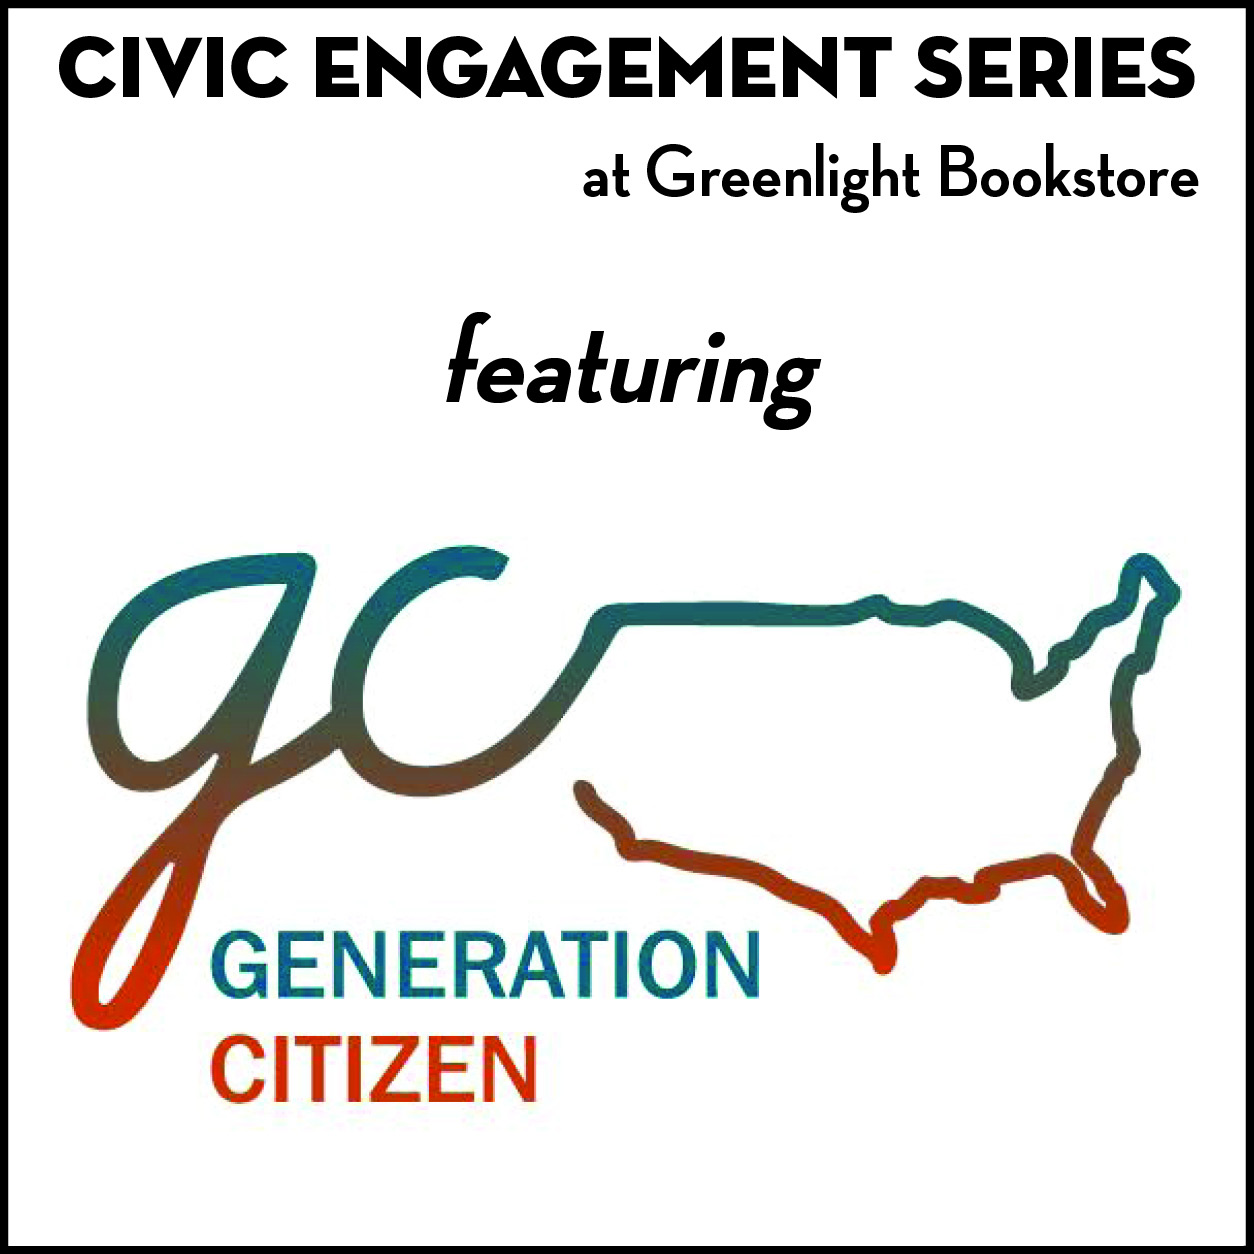 Civic Engagement Series featuring Generation Citizen